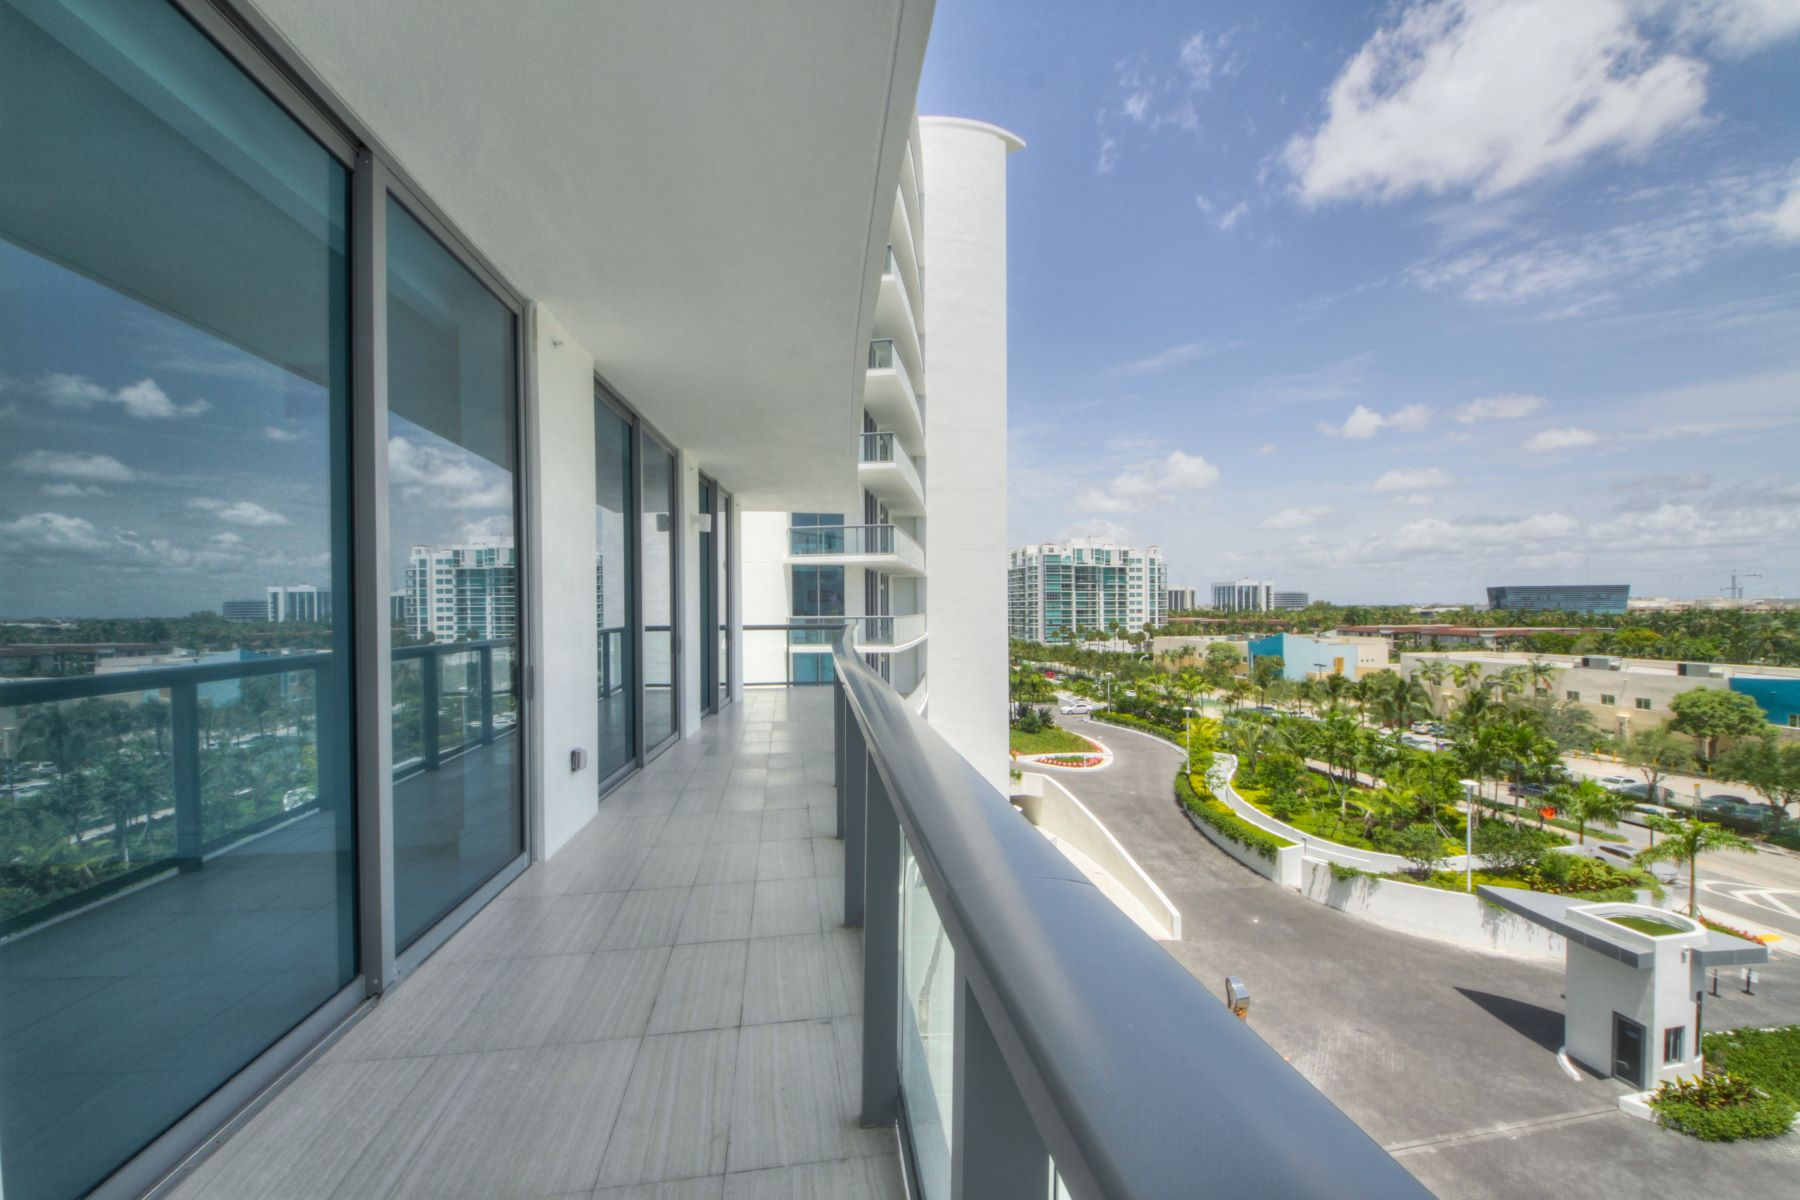 Apartments for Sale at 3300 Ne 188th St 509 Aventura, Florida 33180 United States